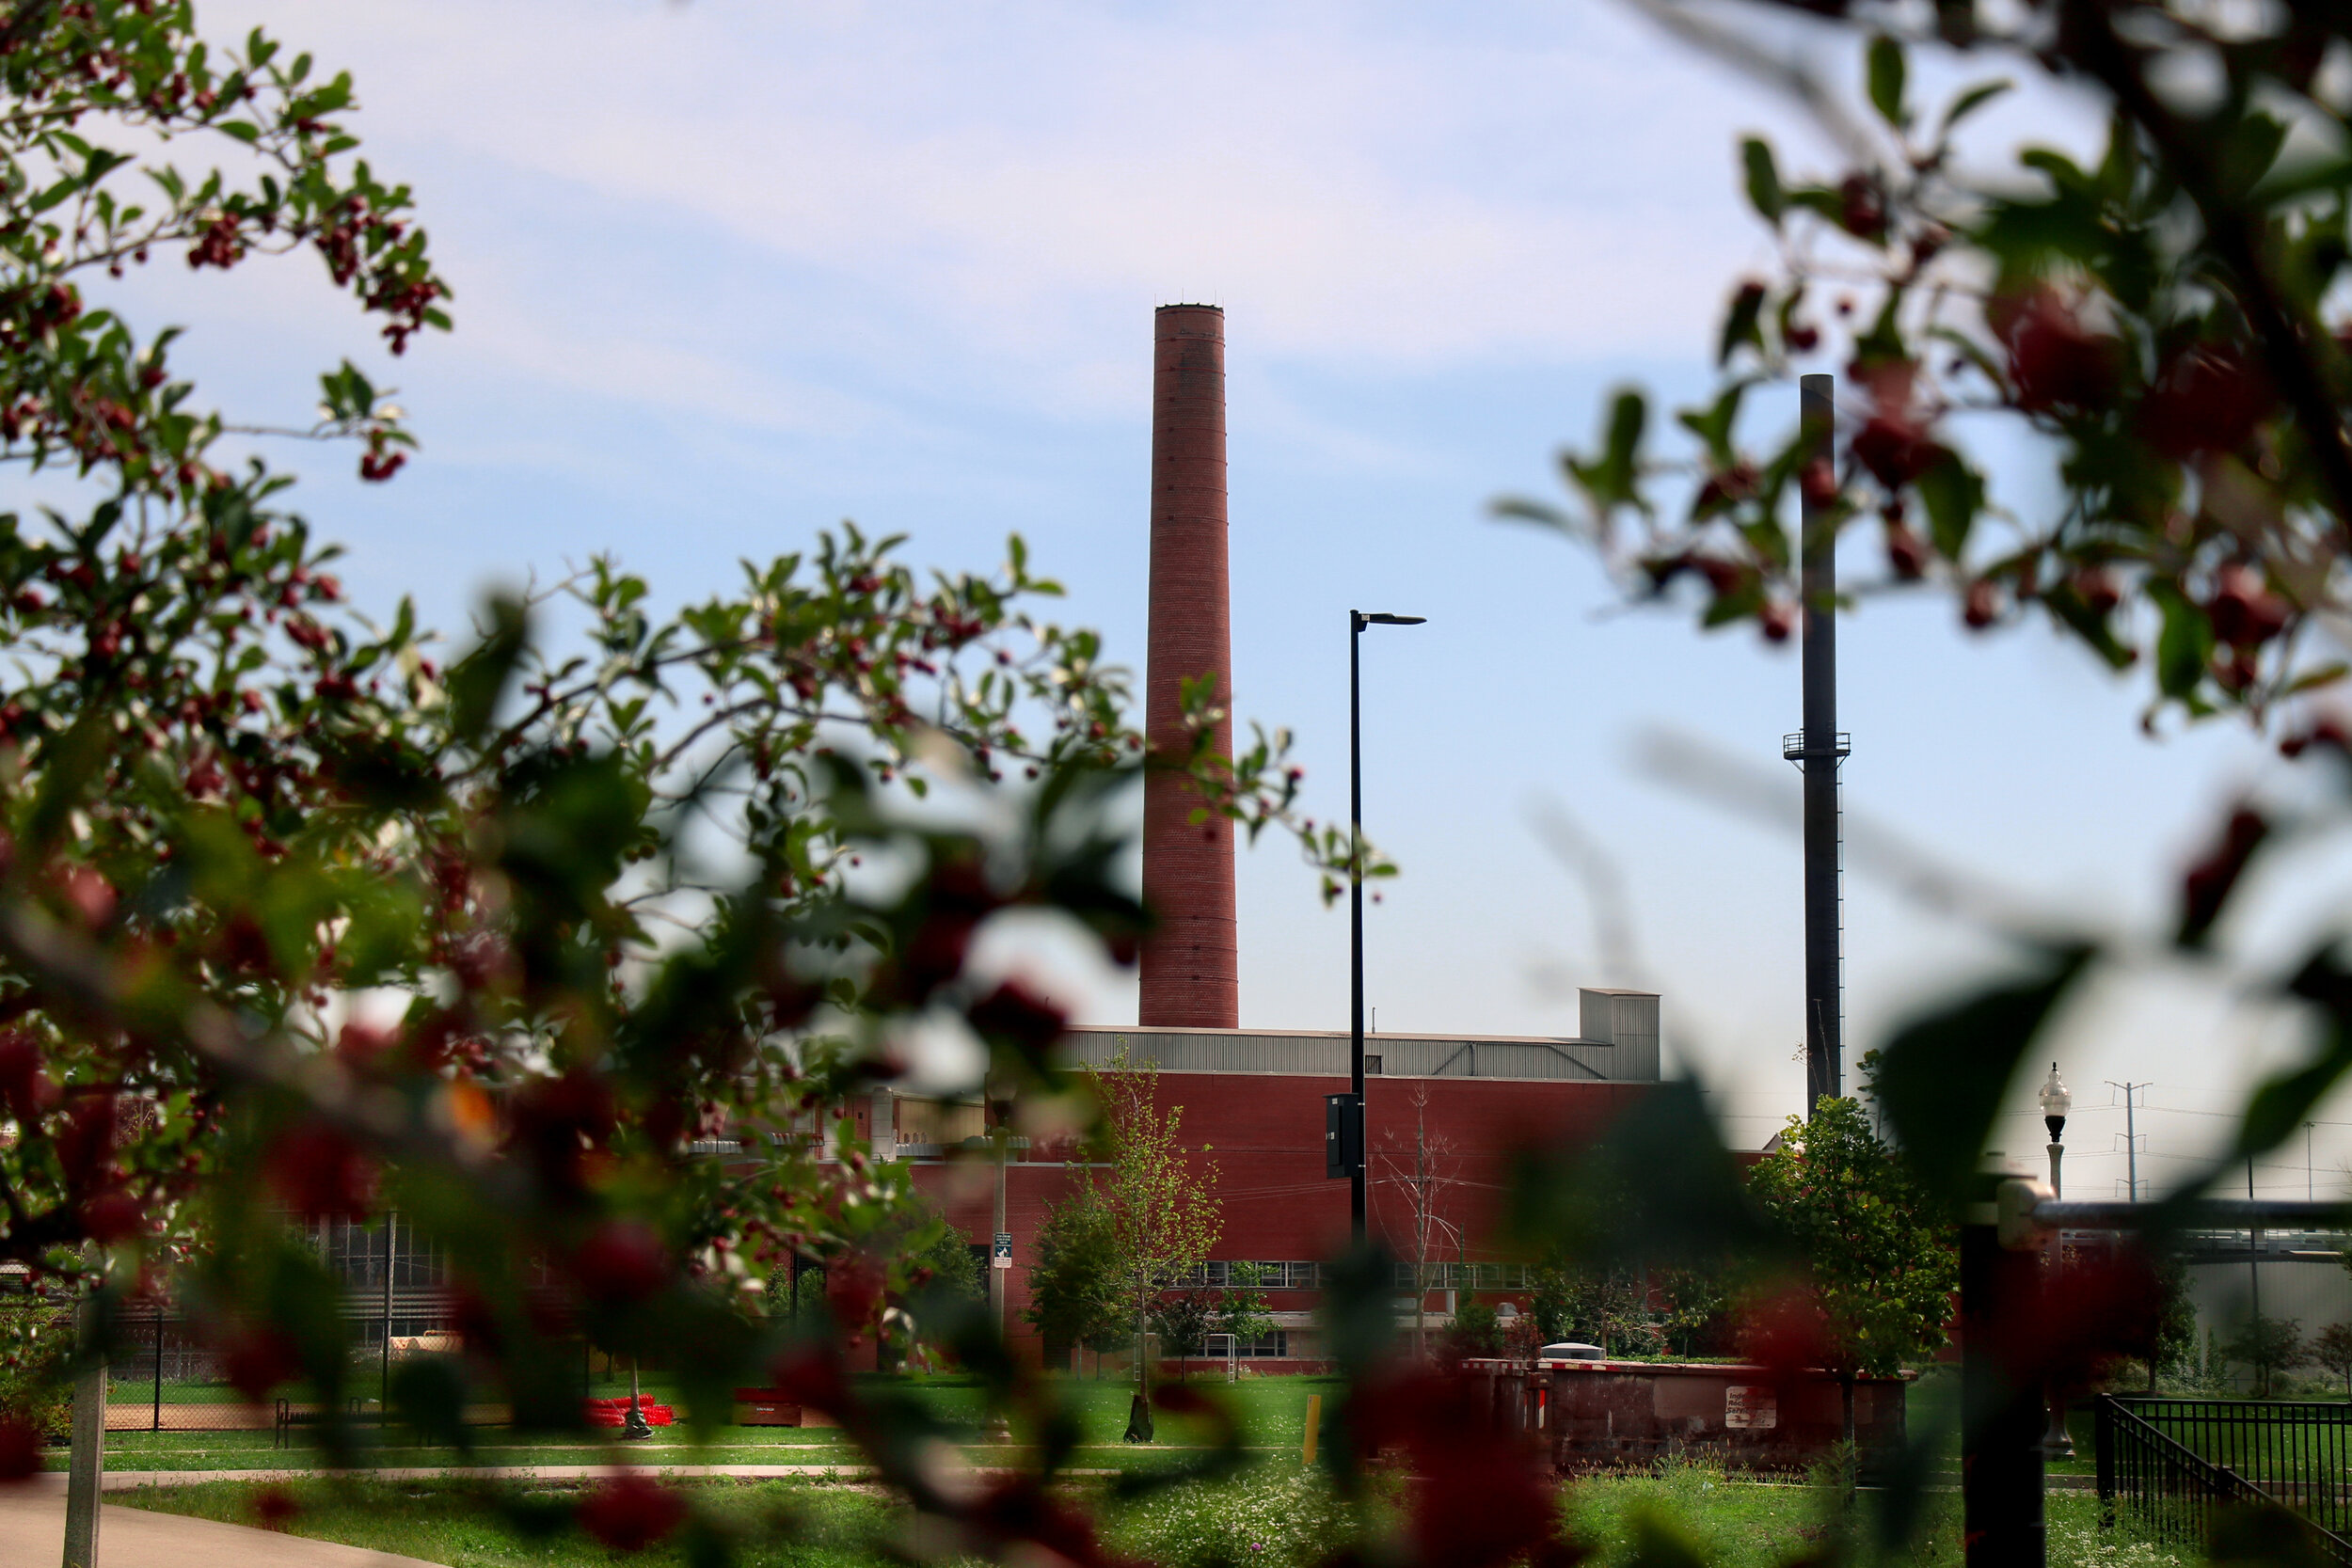 La Villita Park neighbors Cook County Department of Corrections and coal plant.